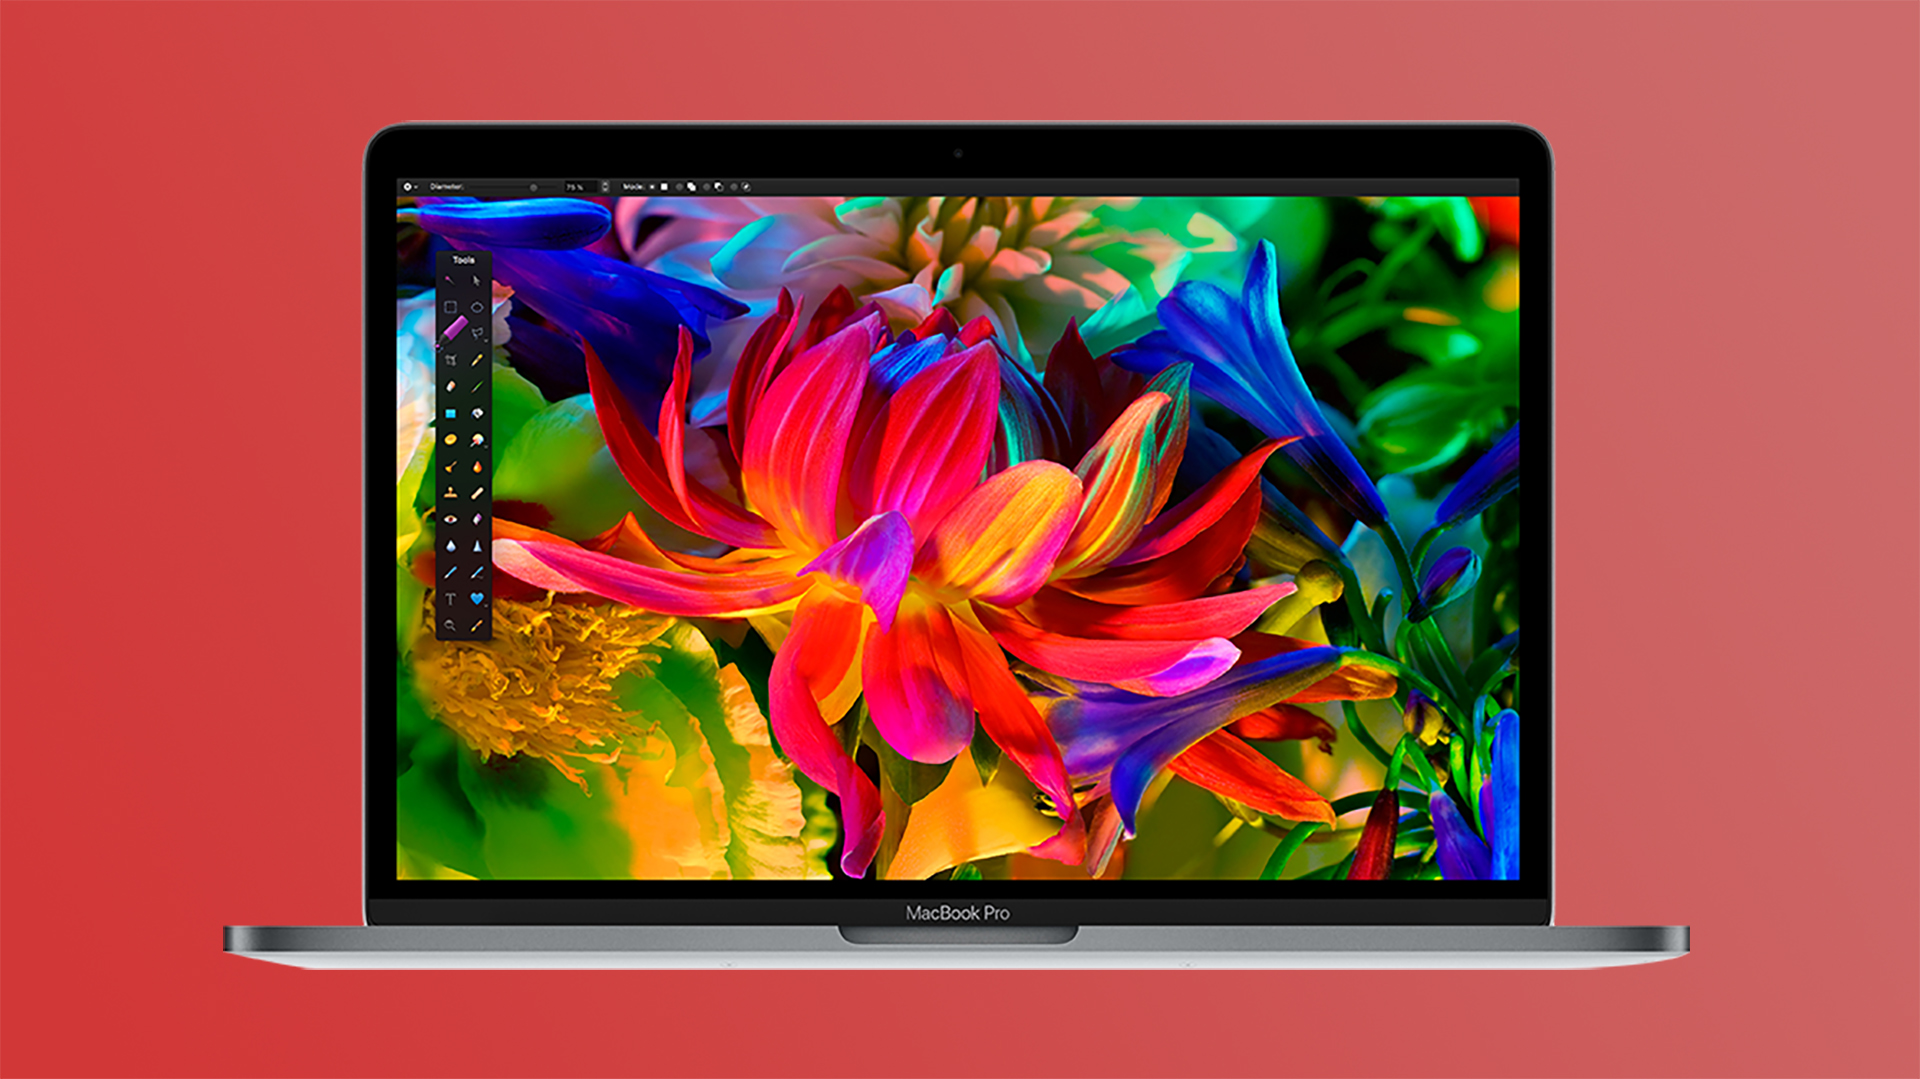 MacBook Pro could get an OLED display – but at what cost? | TechRadar